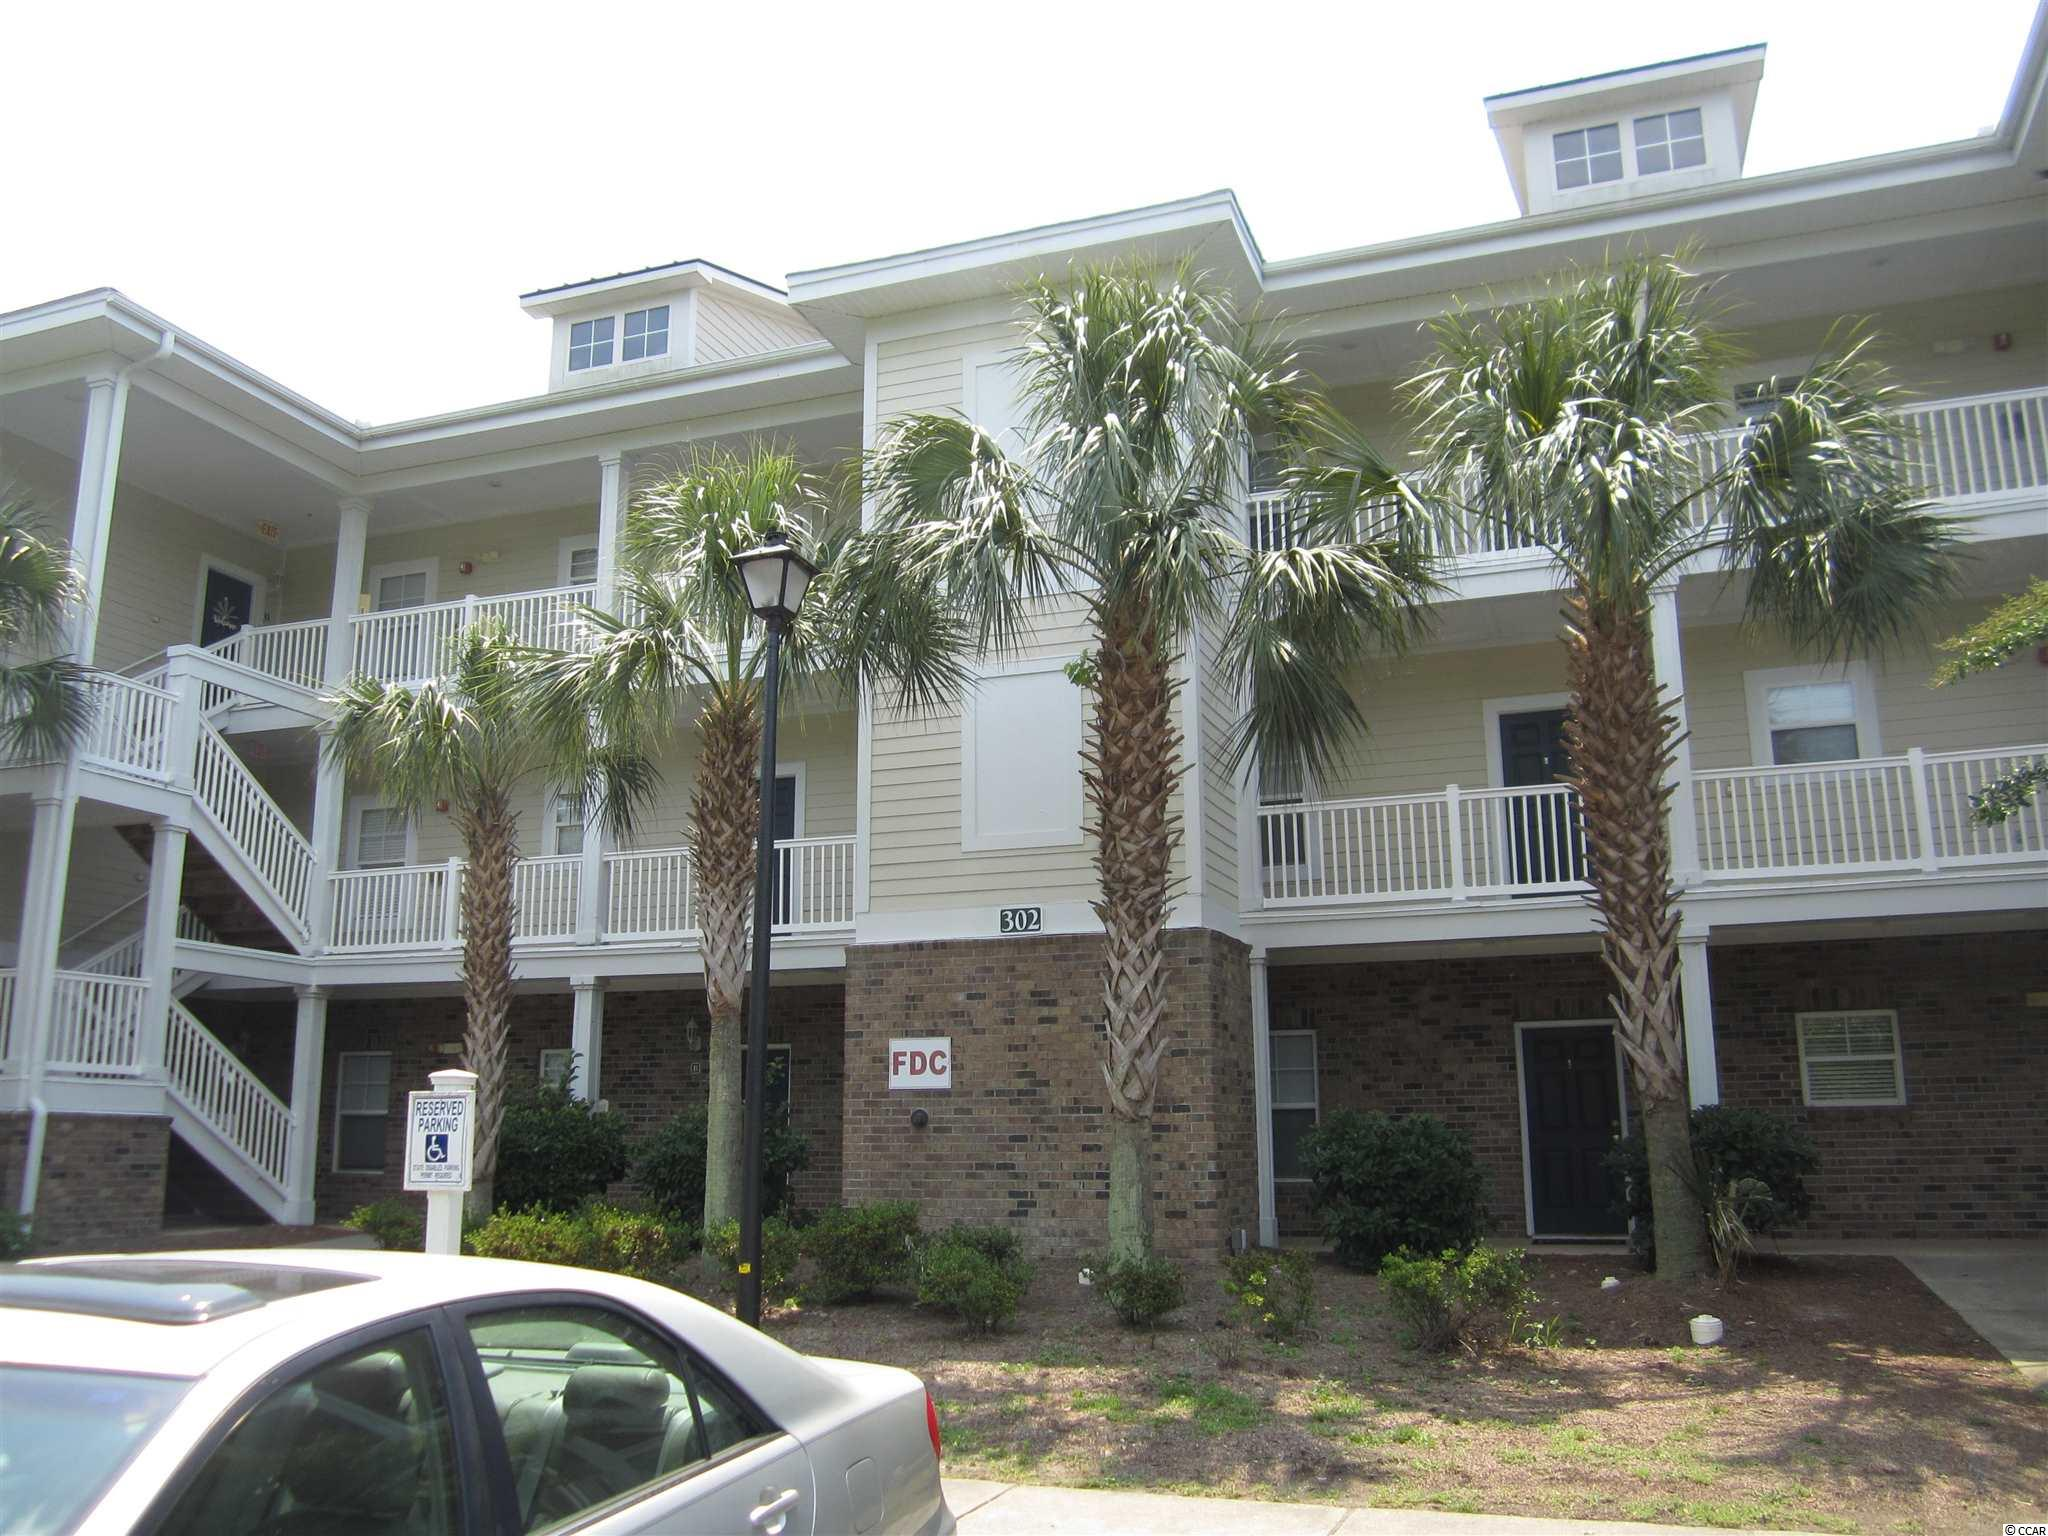 This is your opportunity to have this lovely condo as your primary home or 2nd home.  Close to Coastal Carolina and Conway but not too far from all Myrtle Beach has to offer.  Large 3 bedroom/2 bath condo in the Kiskadee Parke complex.  Currently there is a tenant in place (the pictures are prior to tenant moving in) who will vacate August 1 and the condo will be cleaned and carpets professionally cleaned.  First floor, end unit with a screen porch on the back.  Bright kitchen with white appliances and large living room/ dining room combo.  Well maintained with the water heater replaced 2019, disposal 2017, microwave 2020 and breakers and panel box replaced in 2019.  Kiskadee Parke has so many amenities, a large outdoor pool, exercise room, tennis court, beach volleyball and a basketball court.